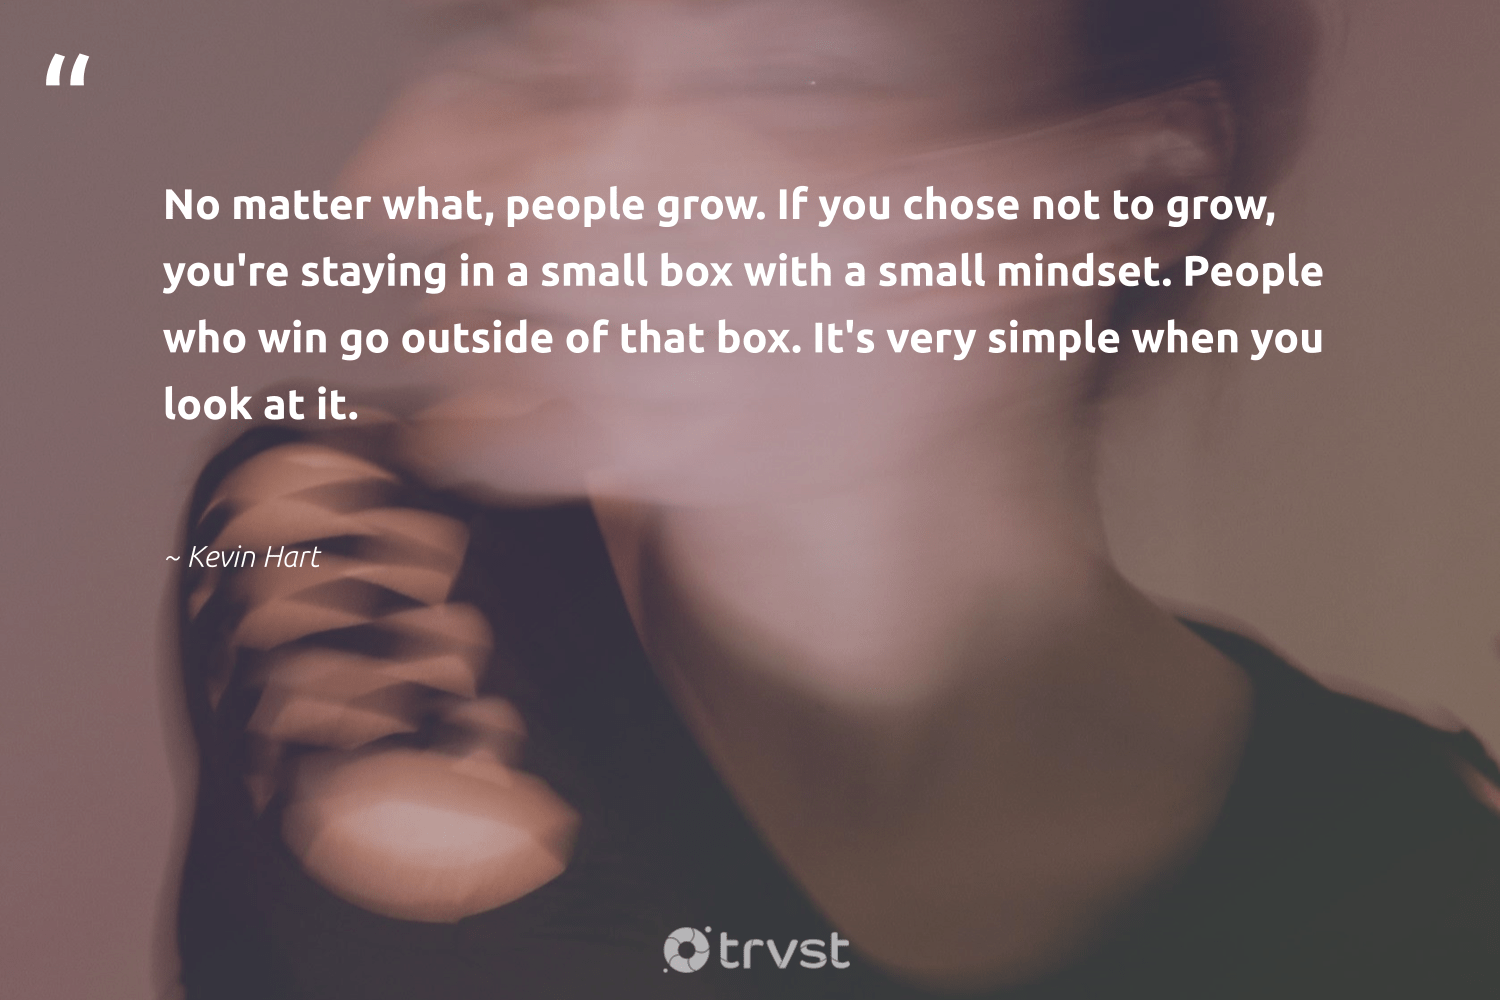 """""""No matter what, people grow. If you chose not to grow, you're staying in a small box with a small mindset. People who win go outside of that box. It's very simple when you look at it.""""  - Kevin Hart #trvst #quotes #mindset #positivity #health #nevergiveup #dotherightthing #creativemindset #changemakers #togetherwecan #bethechange #meditate"""